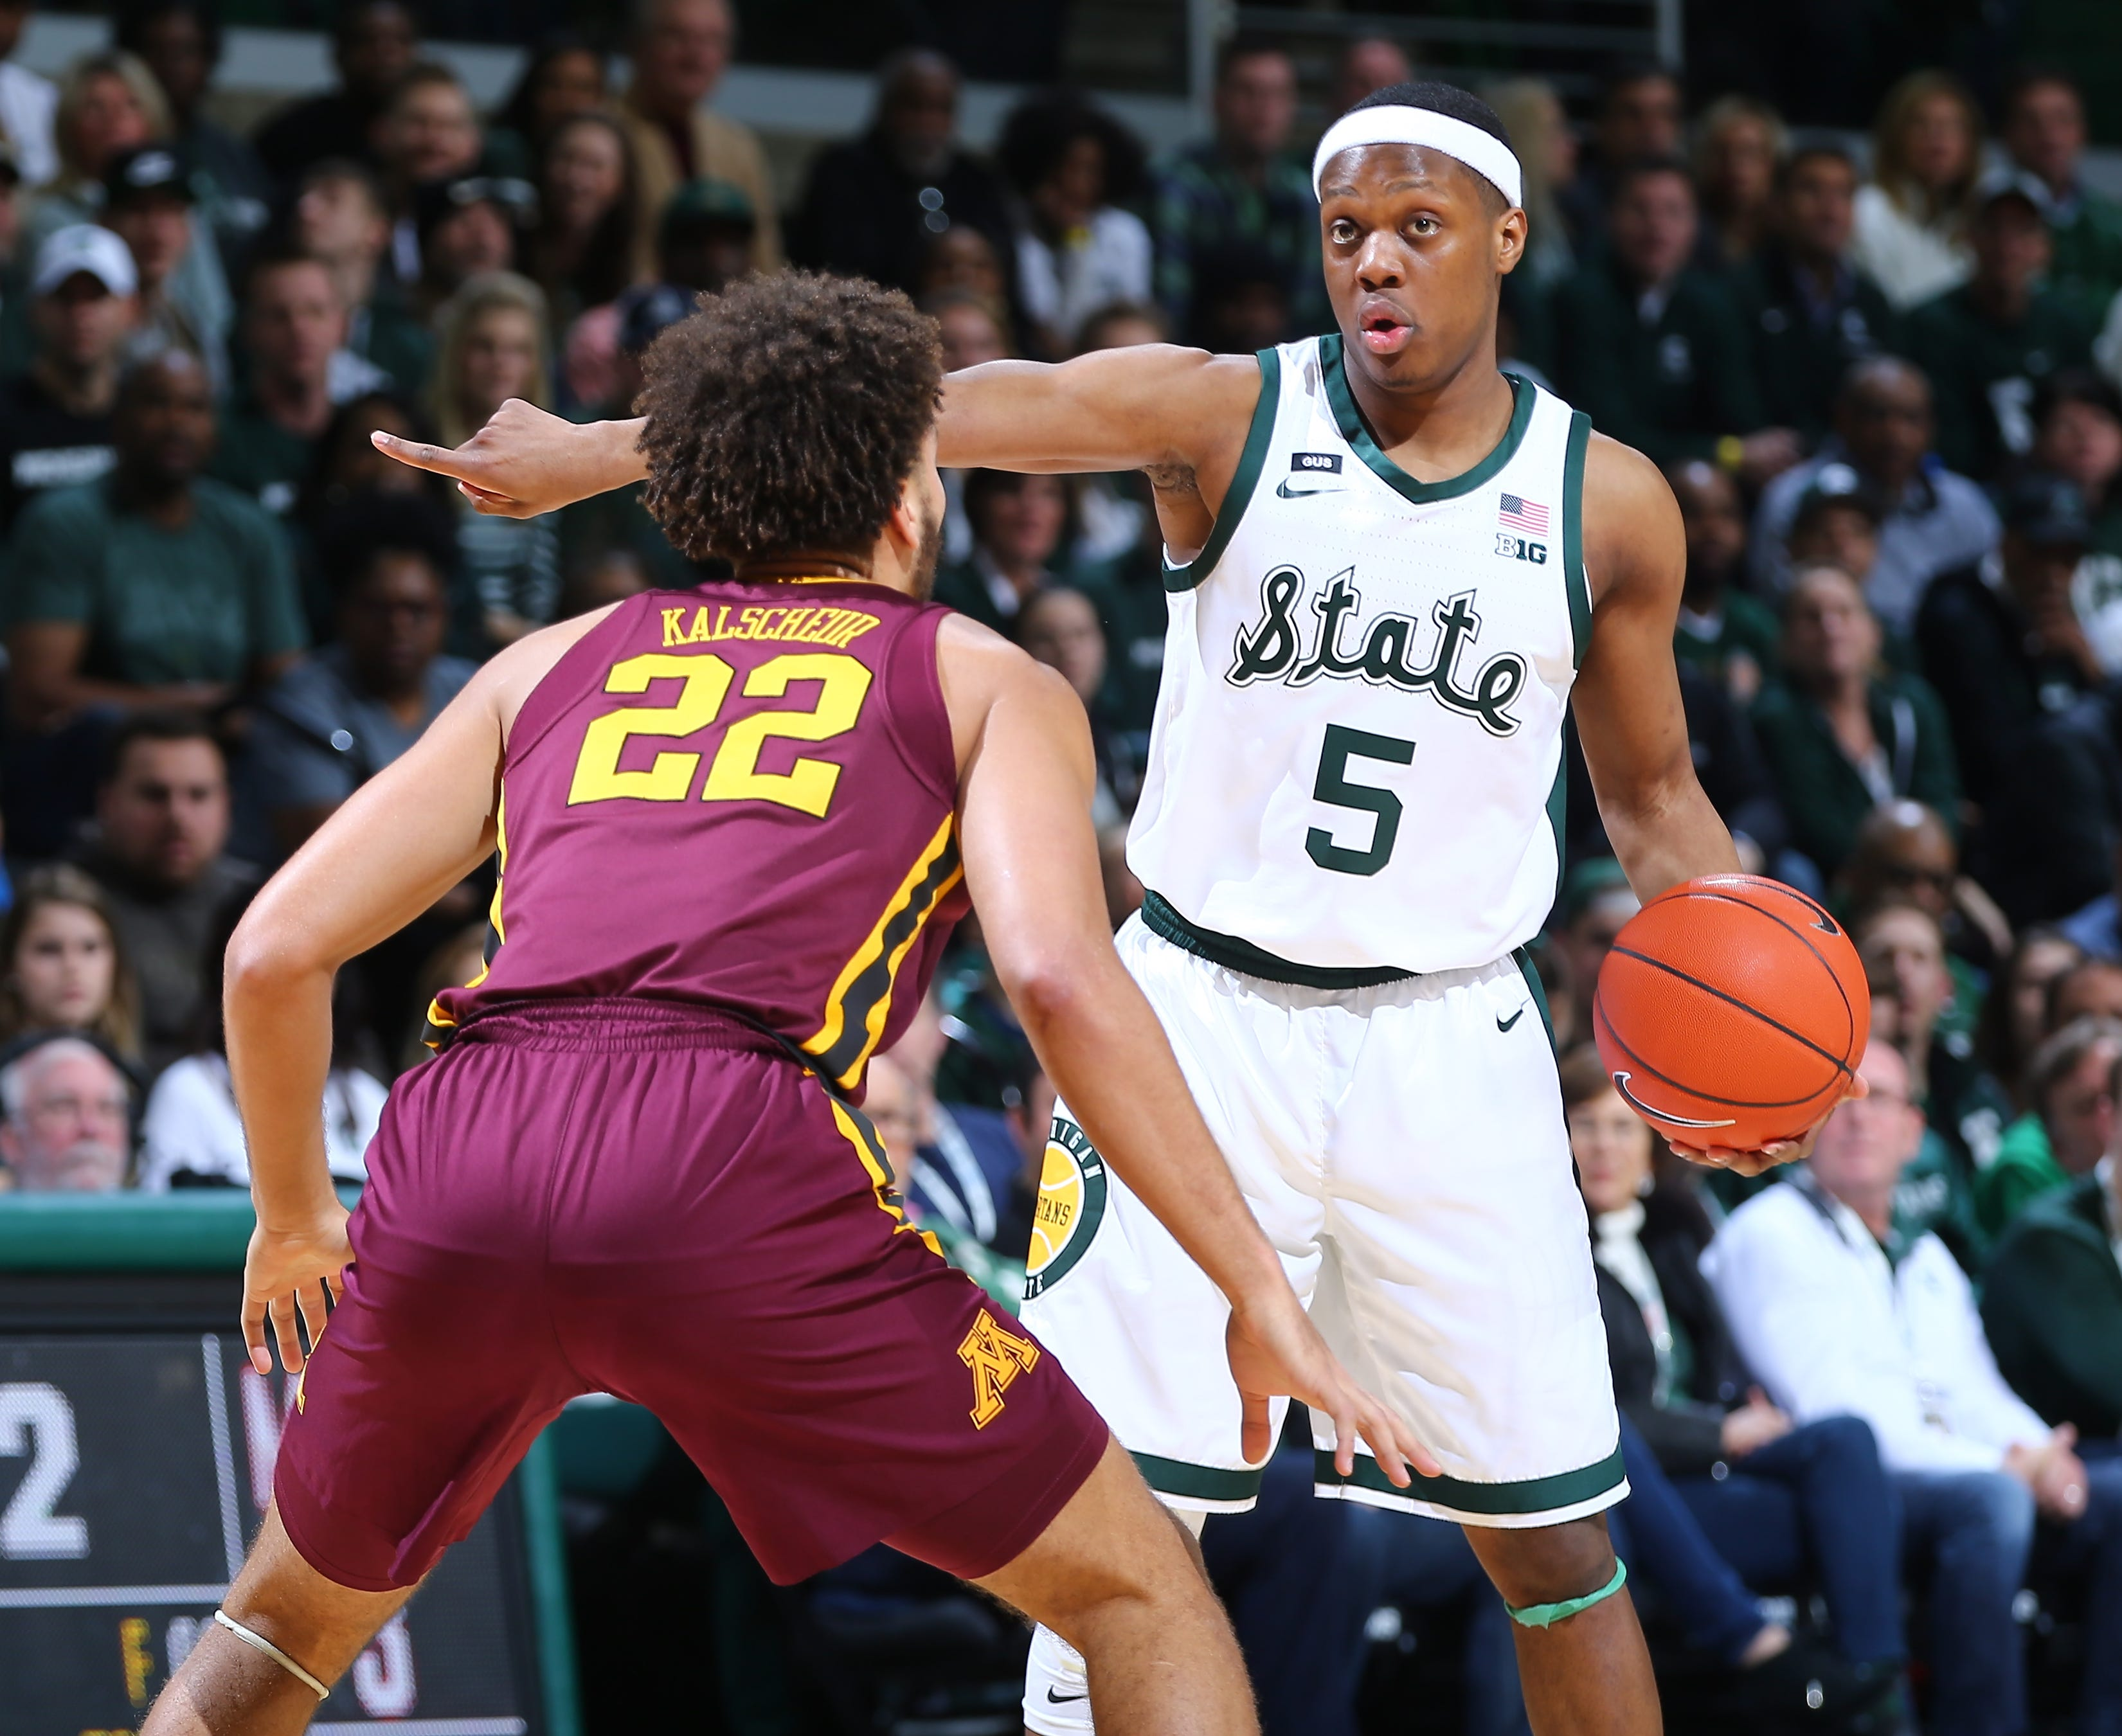 Cassius Winston is among the favorites for Big Ten player of the year. He and the Spartans are still within striking distance of a No. 1 seed in the NCAA tournament.